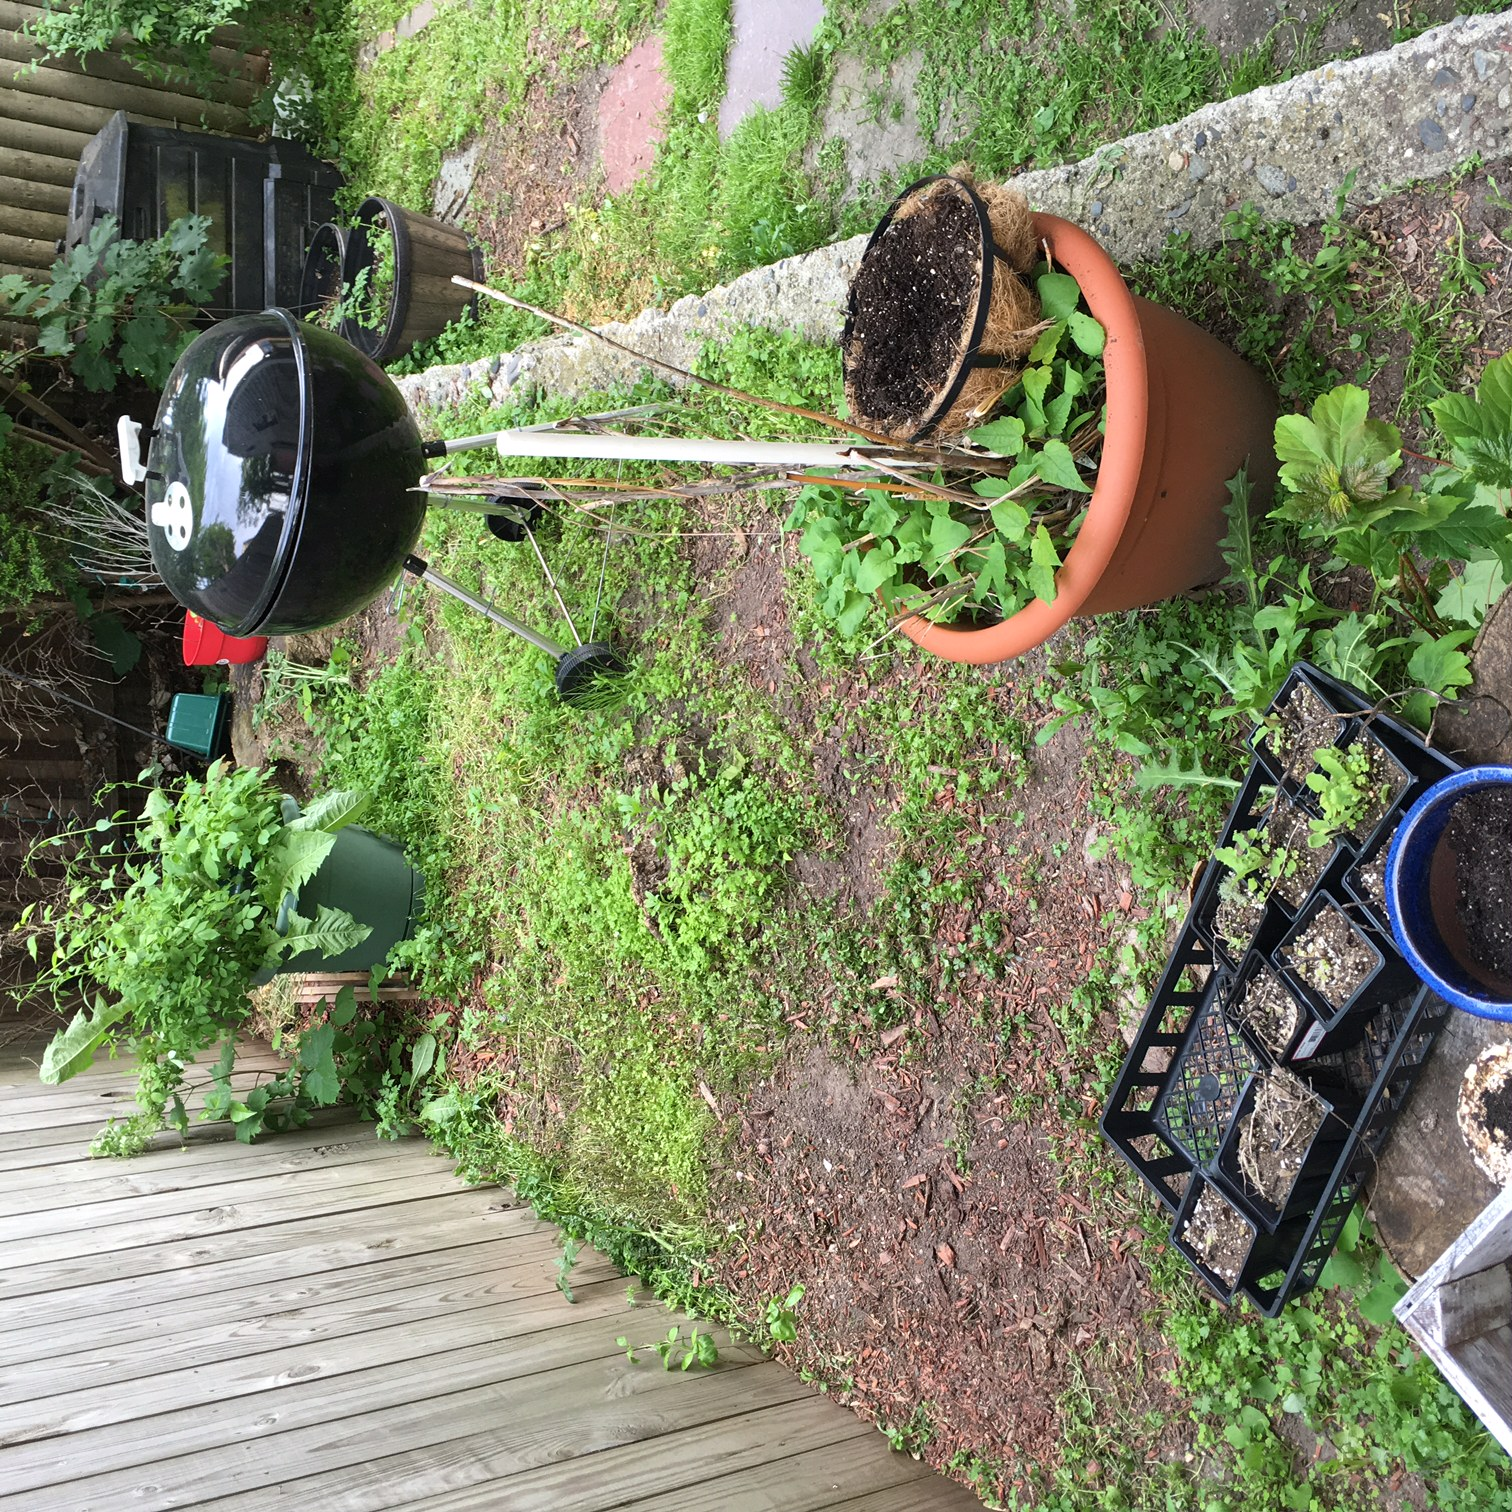 ... Best Way To Kill Weeds (pictures Included) Yard1 ...